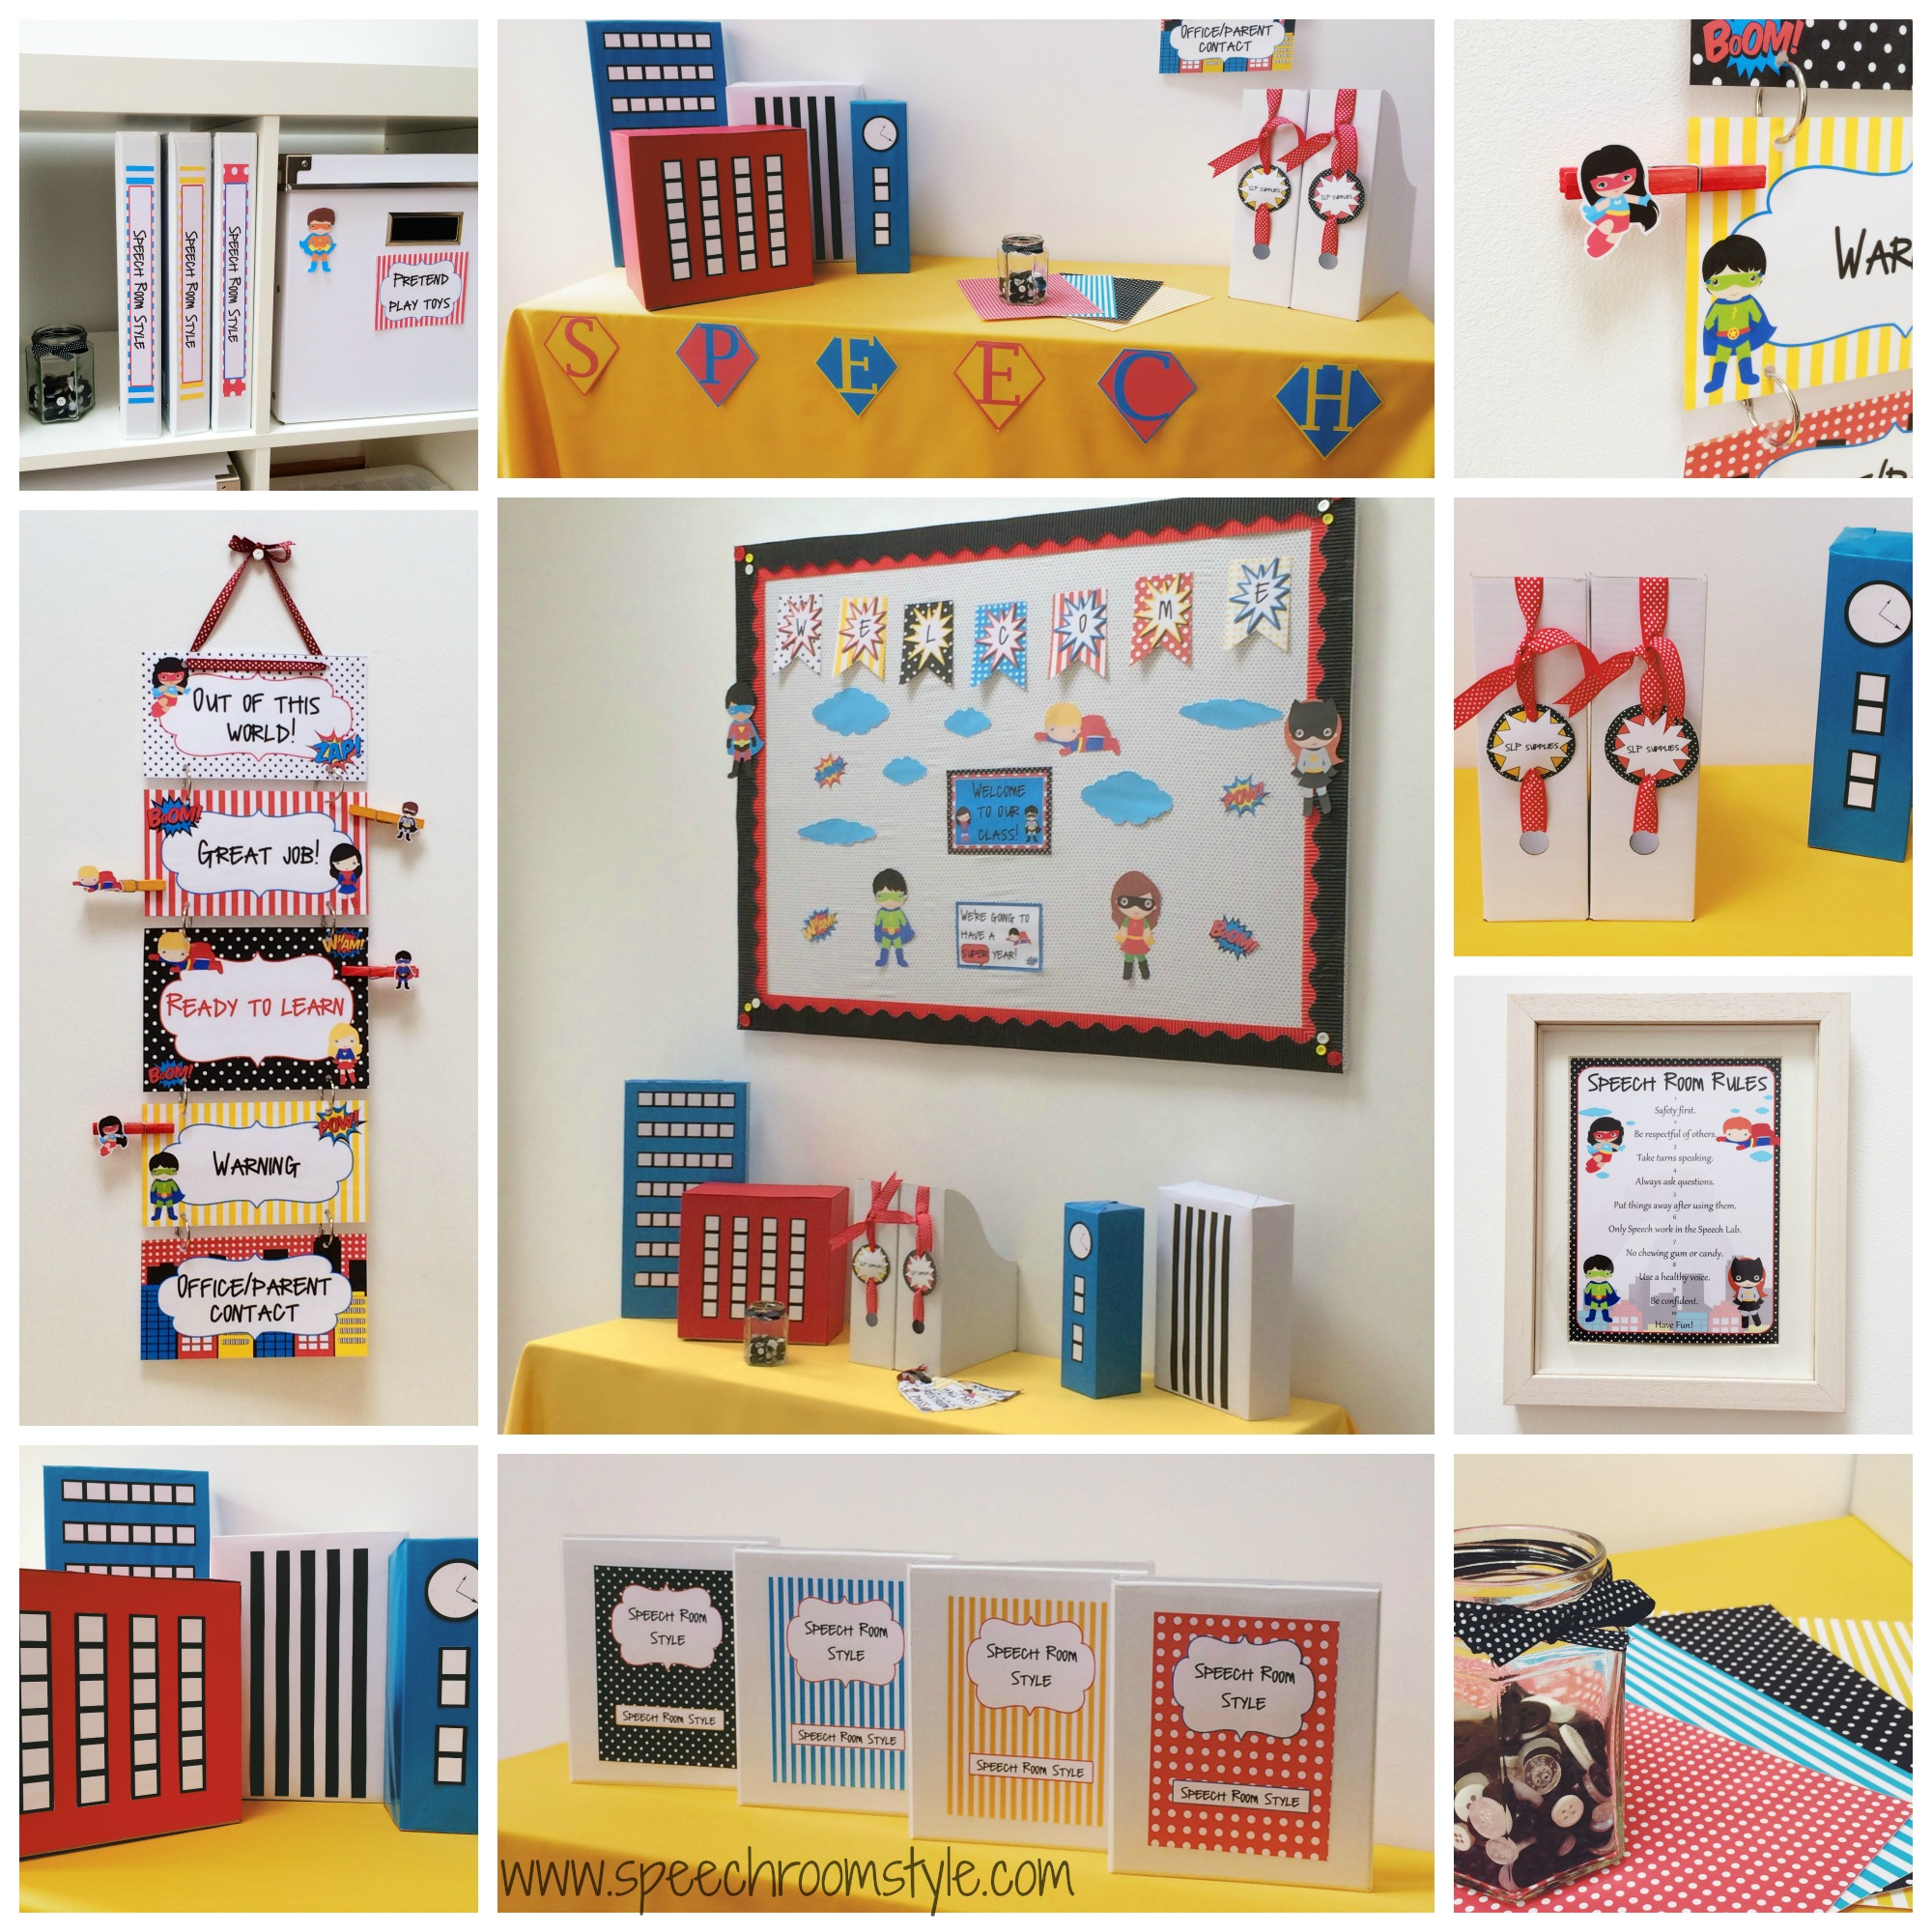 Glamorous Superhero Theme Classroom Decor - Speech Room Style intended for Classroom Decorating Themes